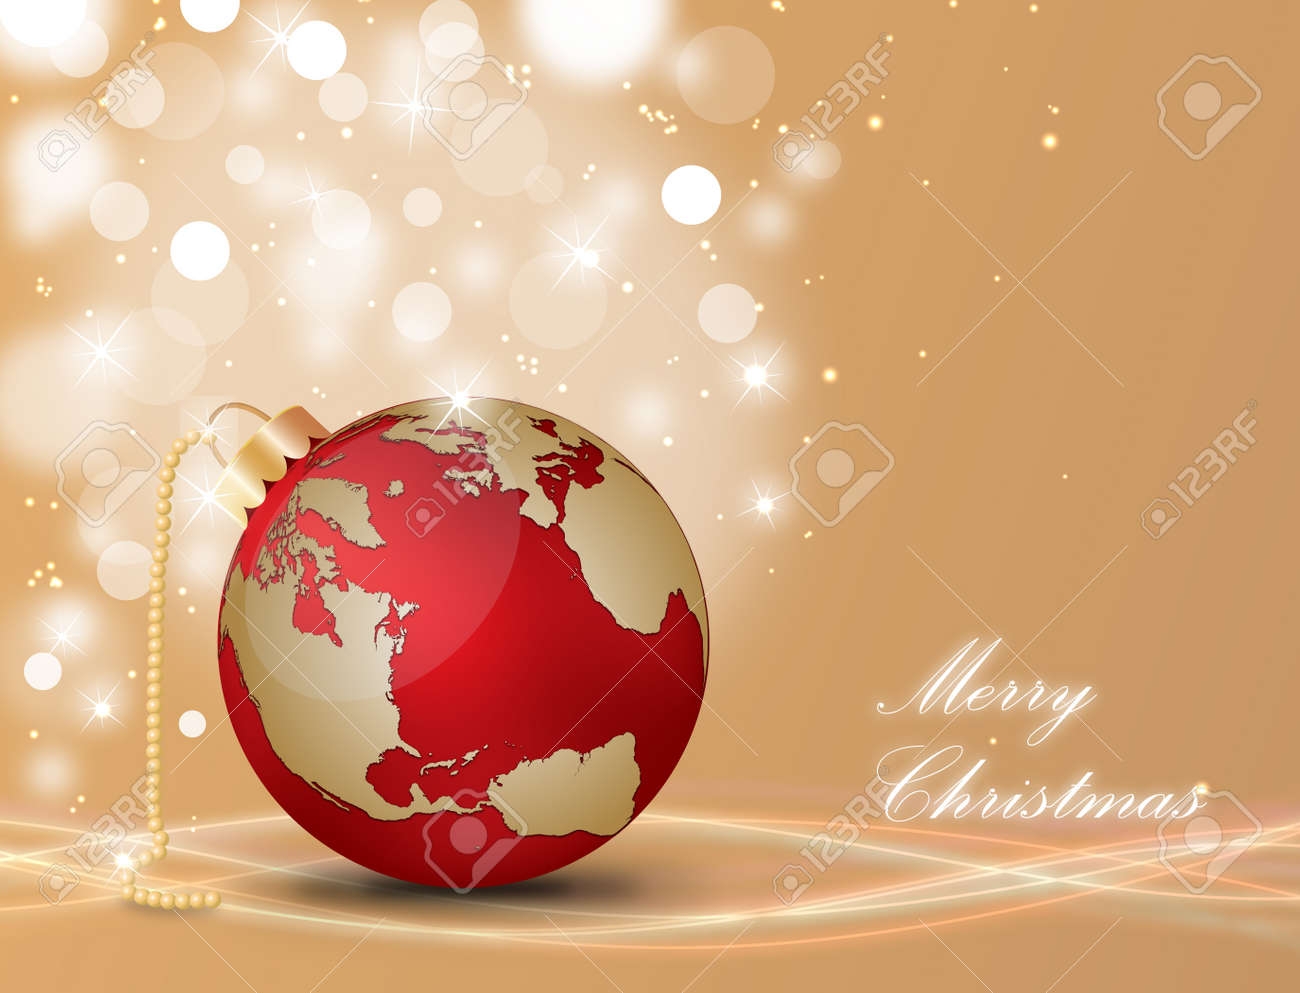 Christmas ball with world map on a decorated background royalty free christmas ball with world map on a decorated background stock vector 15081104 gumiabroncs Images